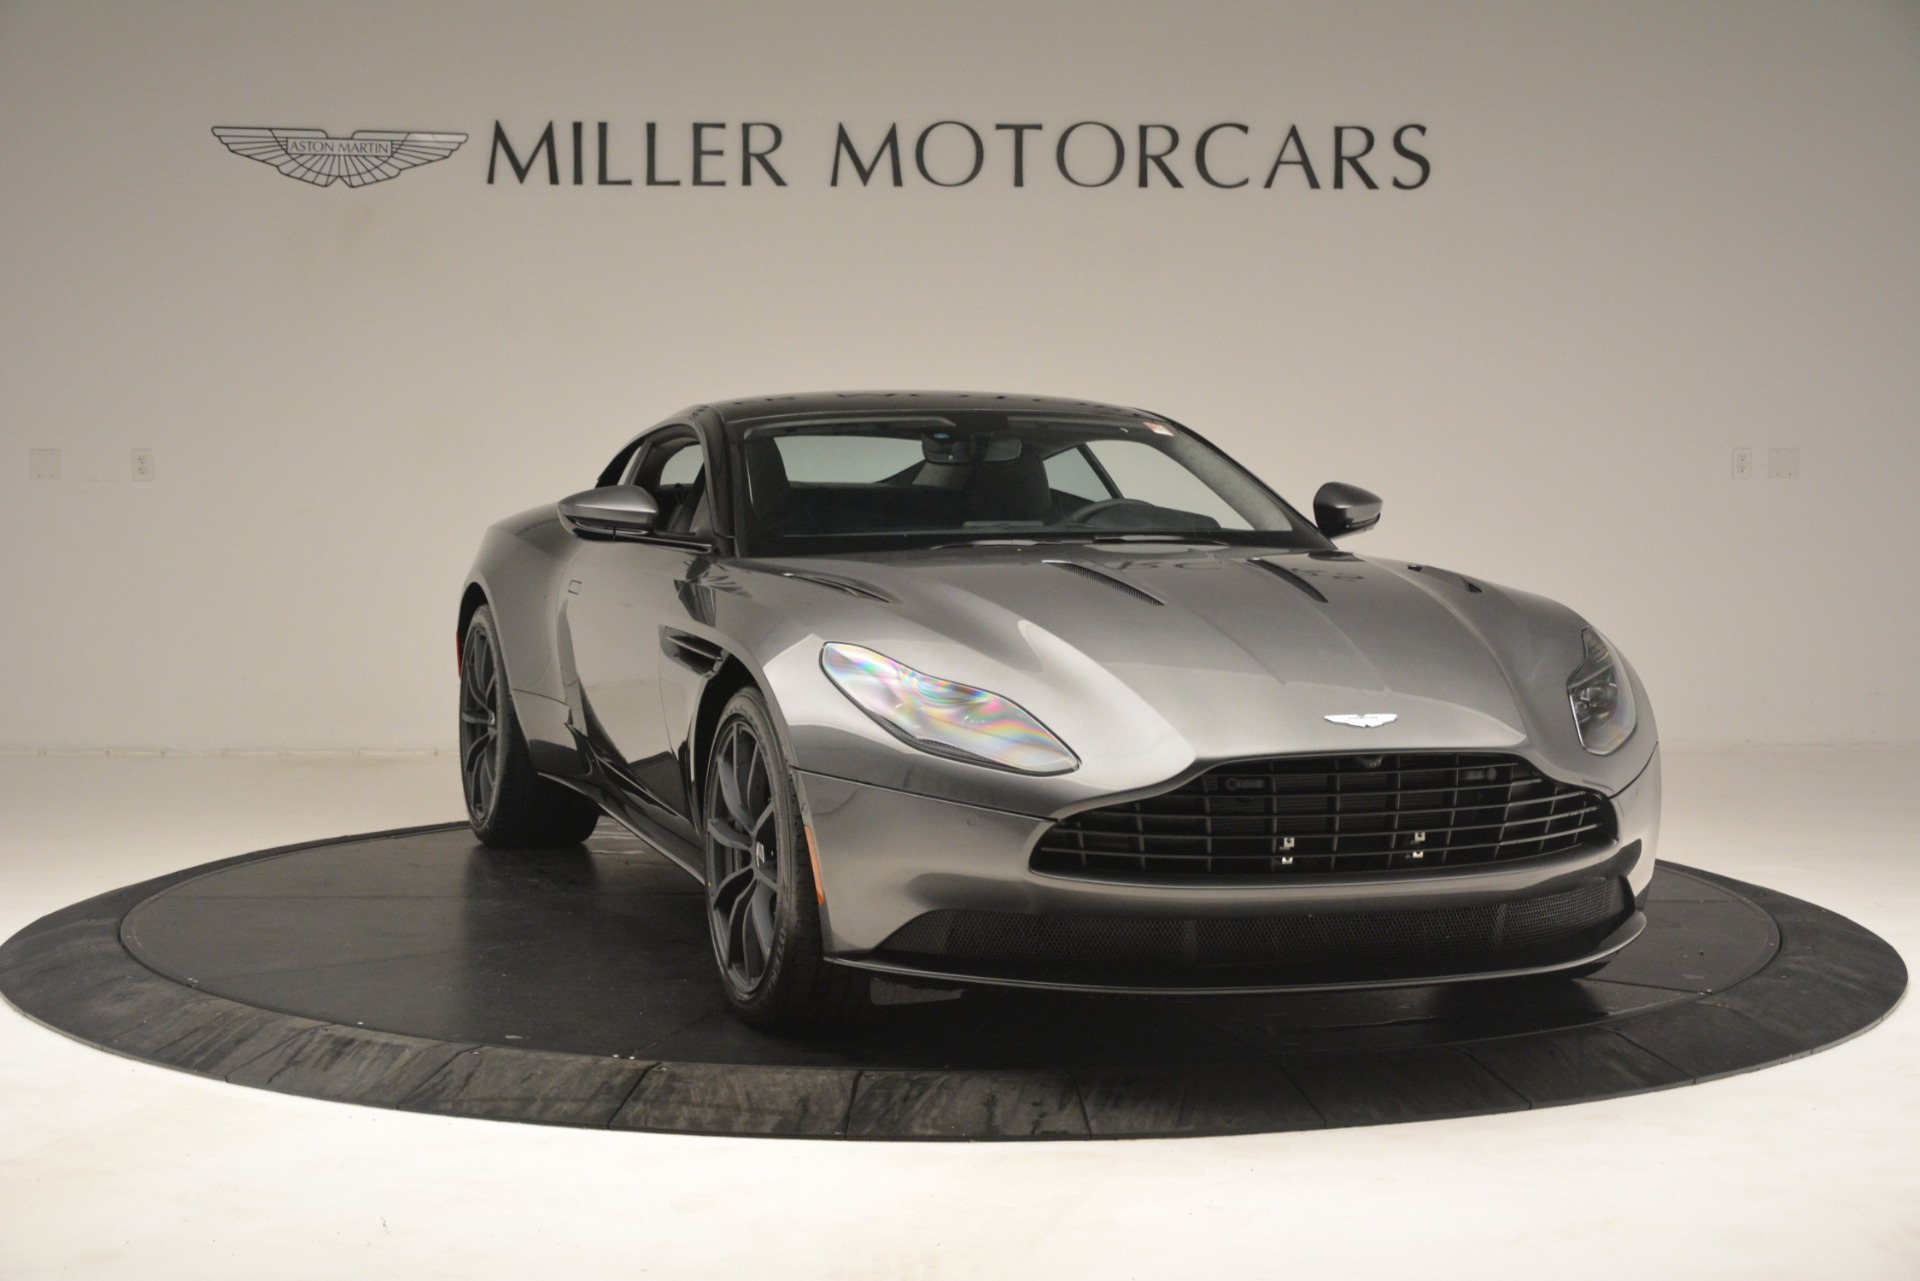 New 2019 Aston Martin DB11 V12 AMR Coupe For Sale In Westport, CT 3123_p11